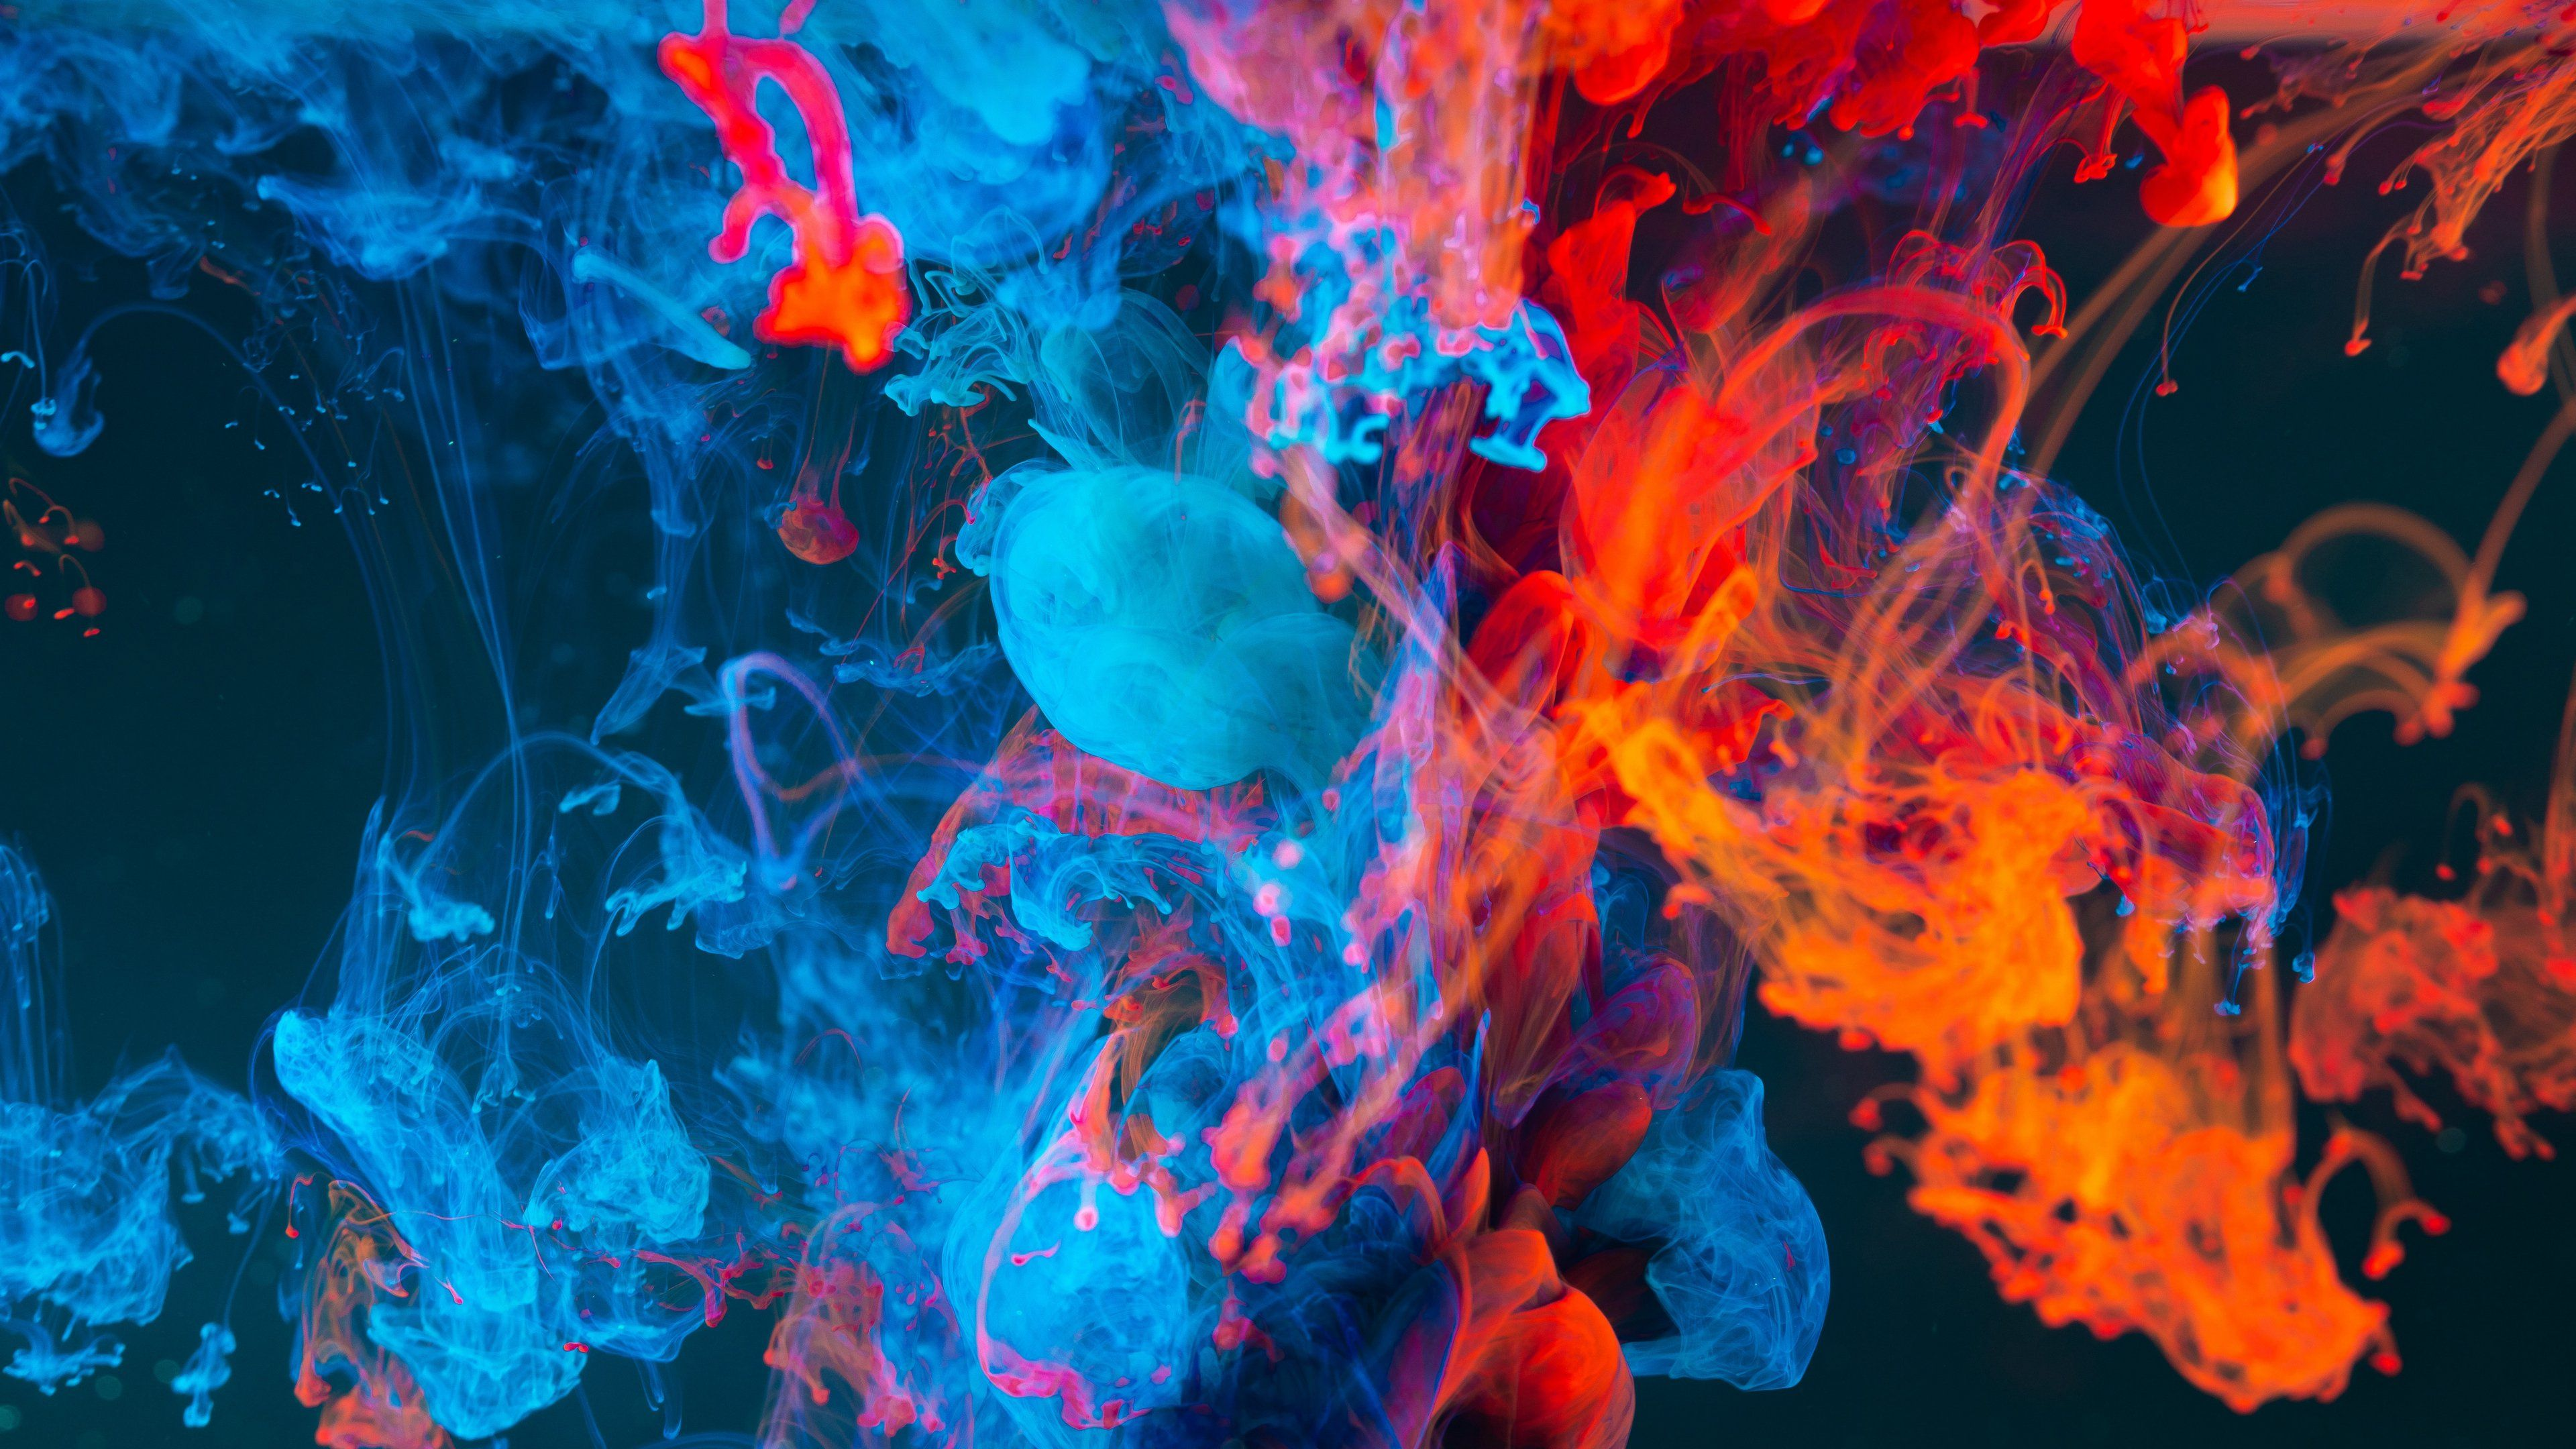 Paint Liquid Abstract 4k Wallpaper In 2020 Abstract Hd Backgrounds Wallpaper